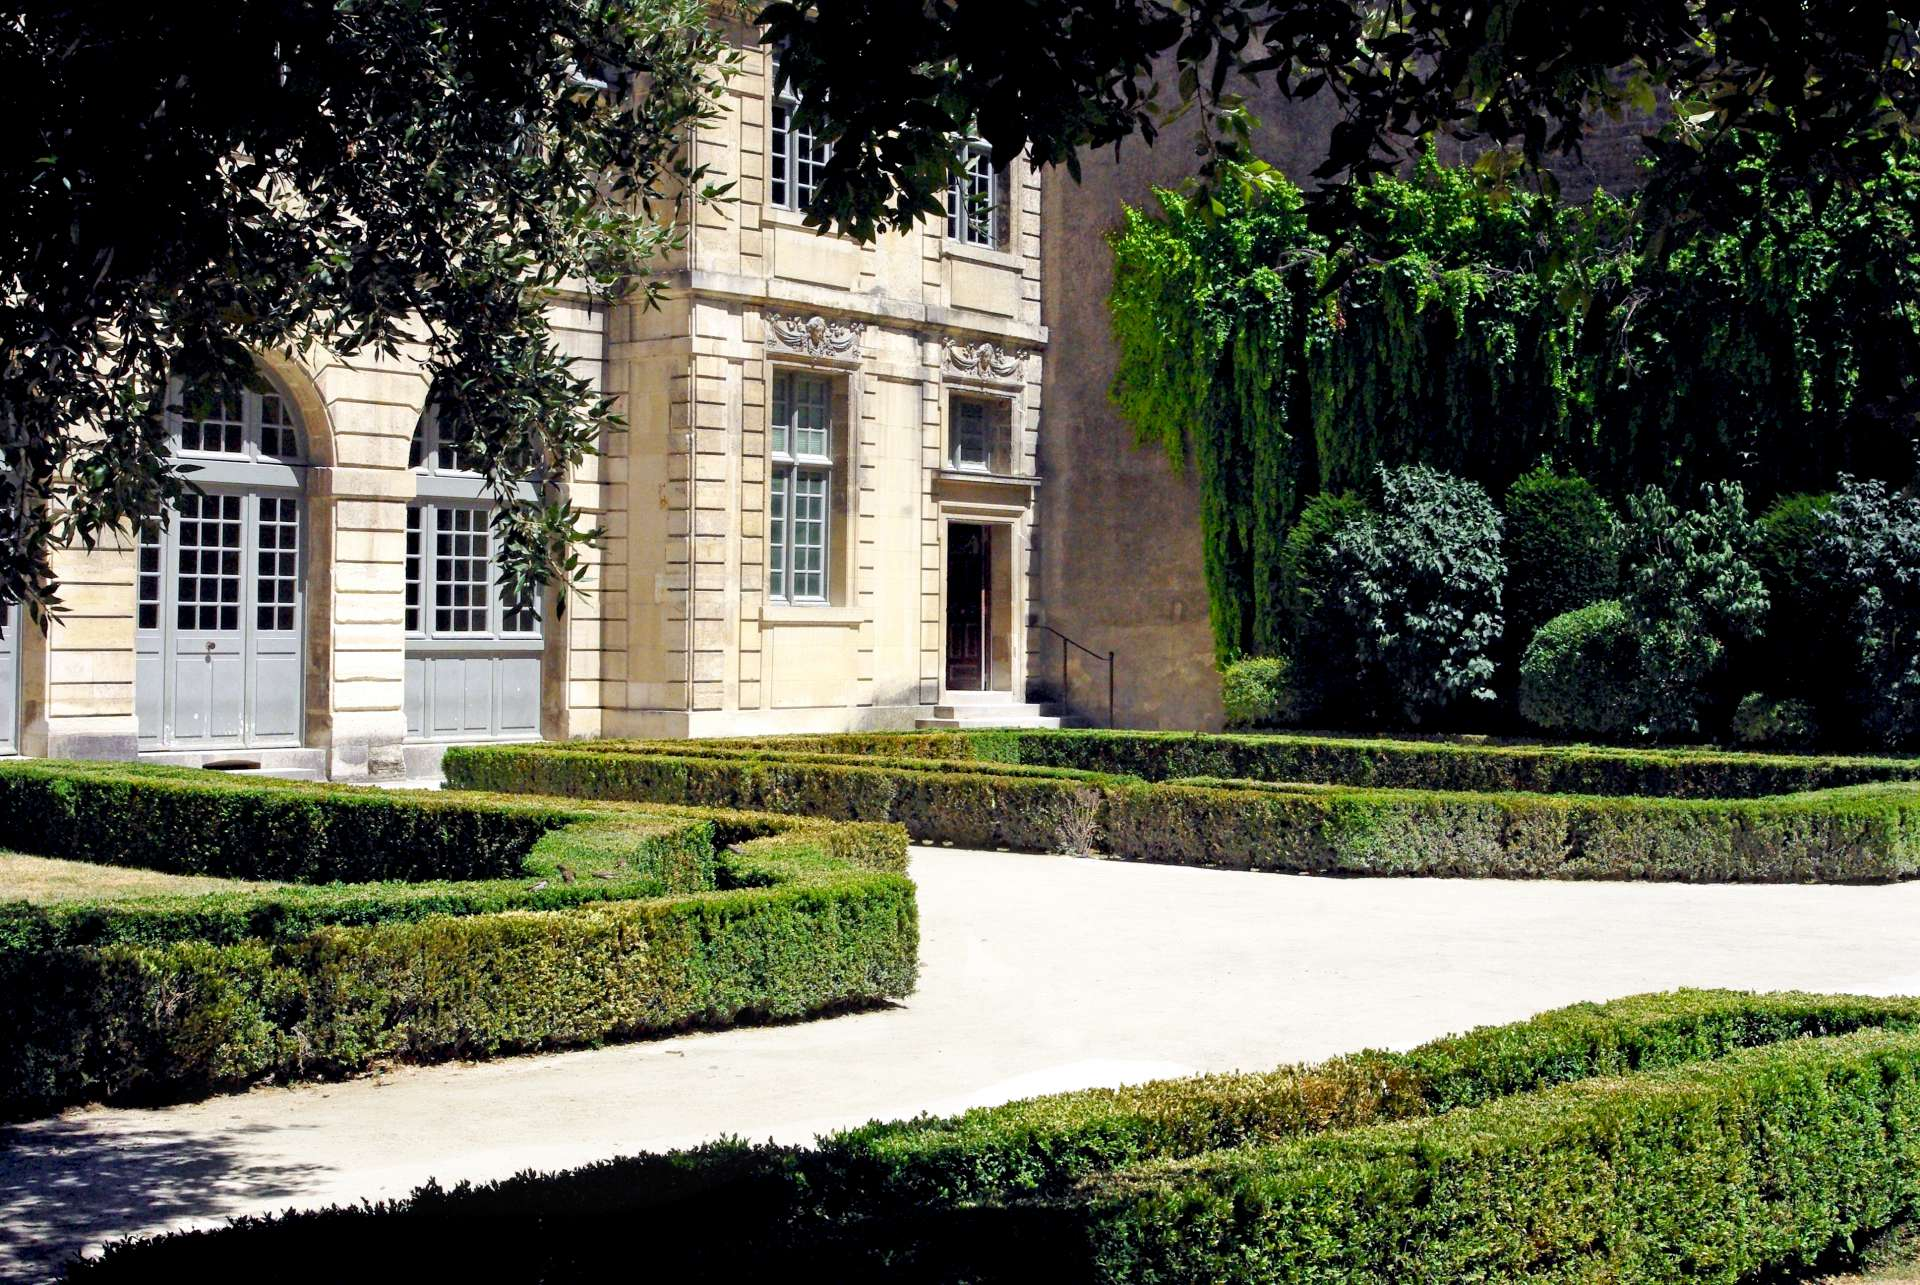 Garden of Hôtel de Sully © French Moments